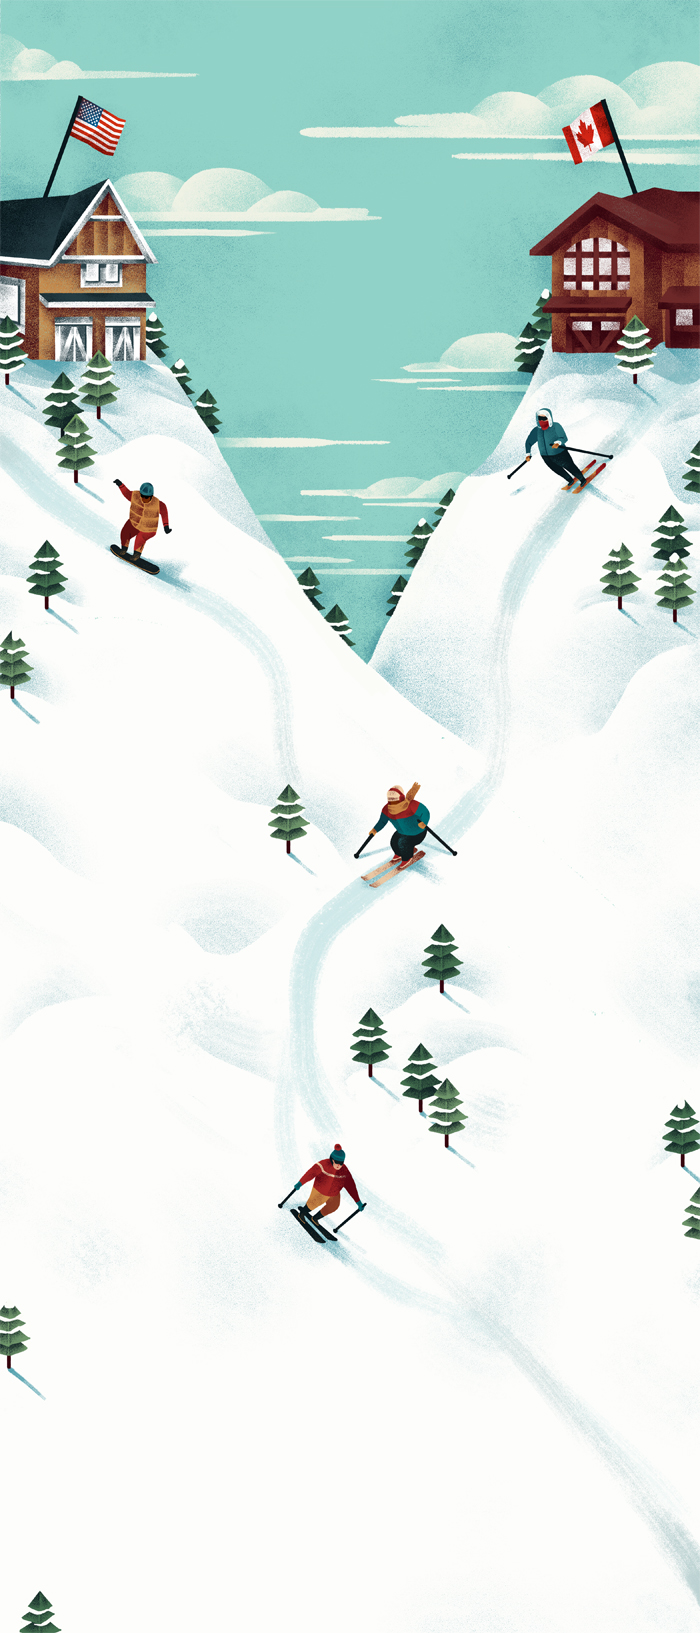 Jeannie-Phan-Illustration-National-Post-Ski-Resort